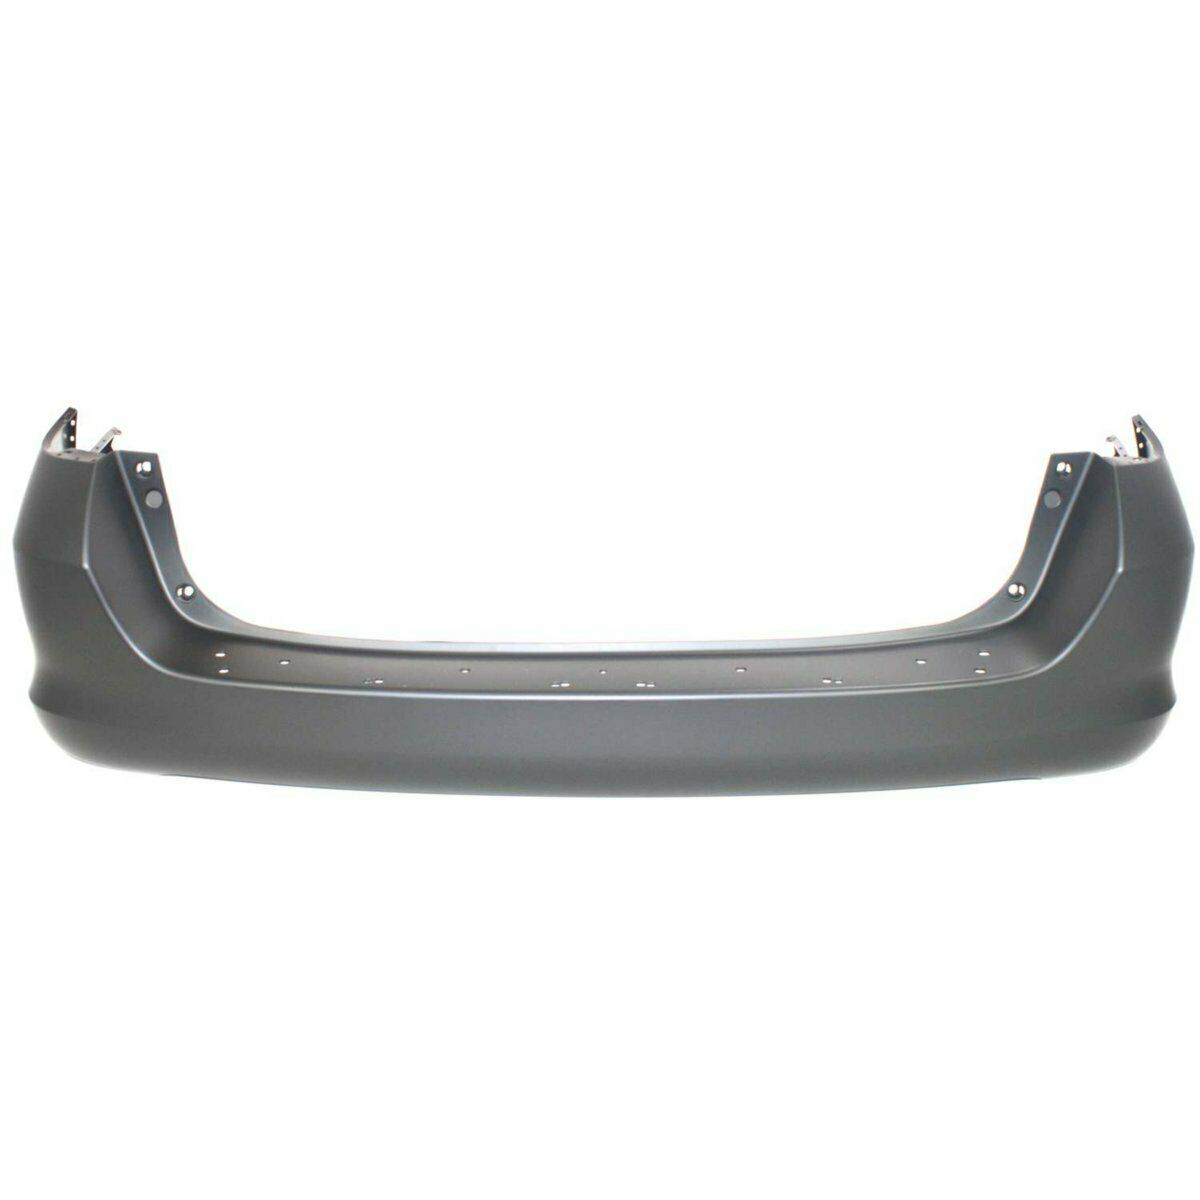 2005-2008 Honda Odyssey Rear Bumper Painted to Match